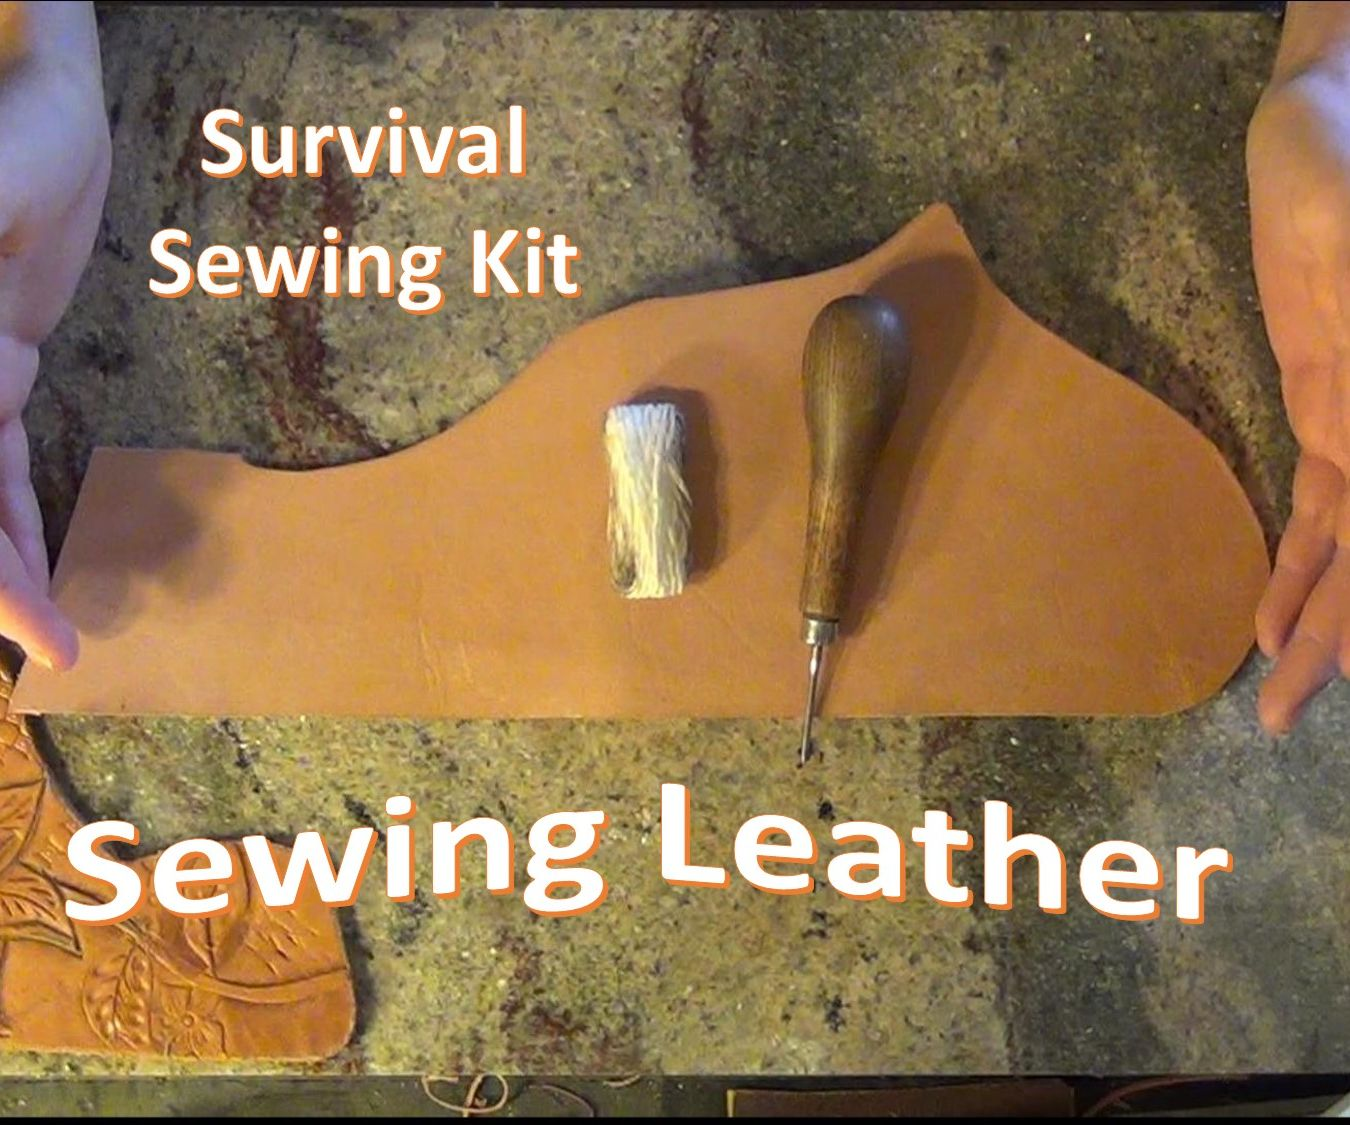 Survival Sewing Repair Tool and How To Use It!